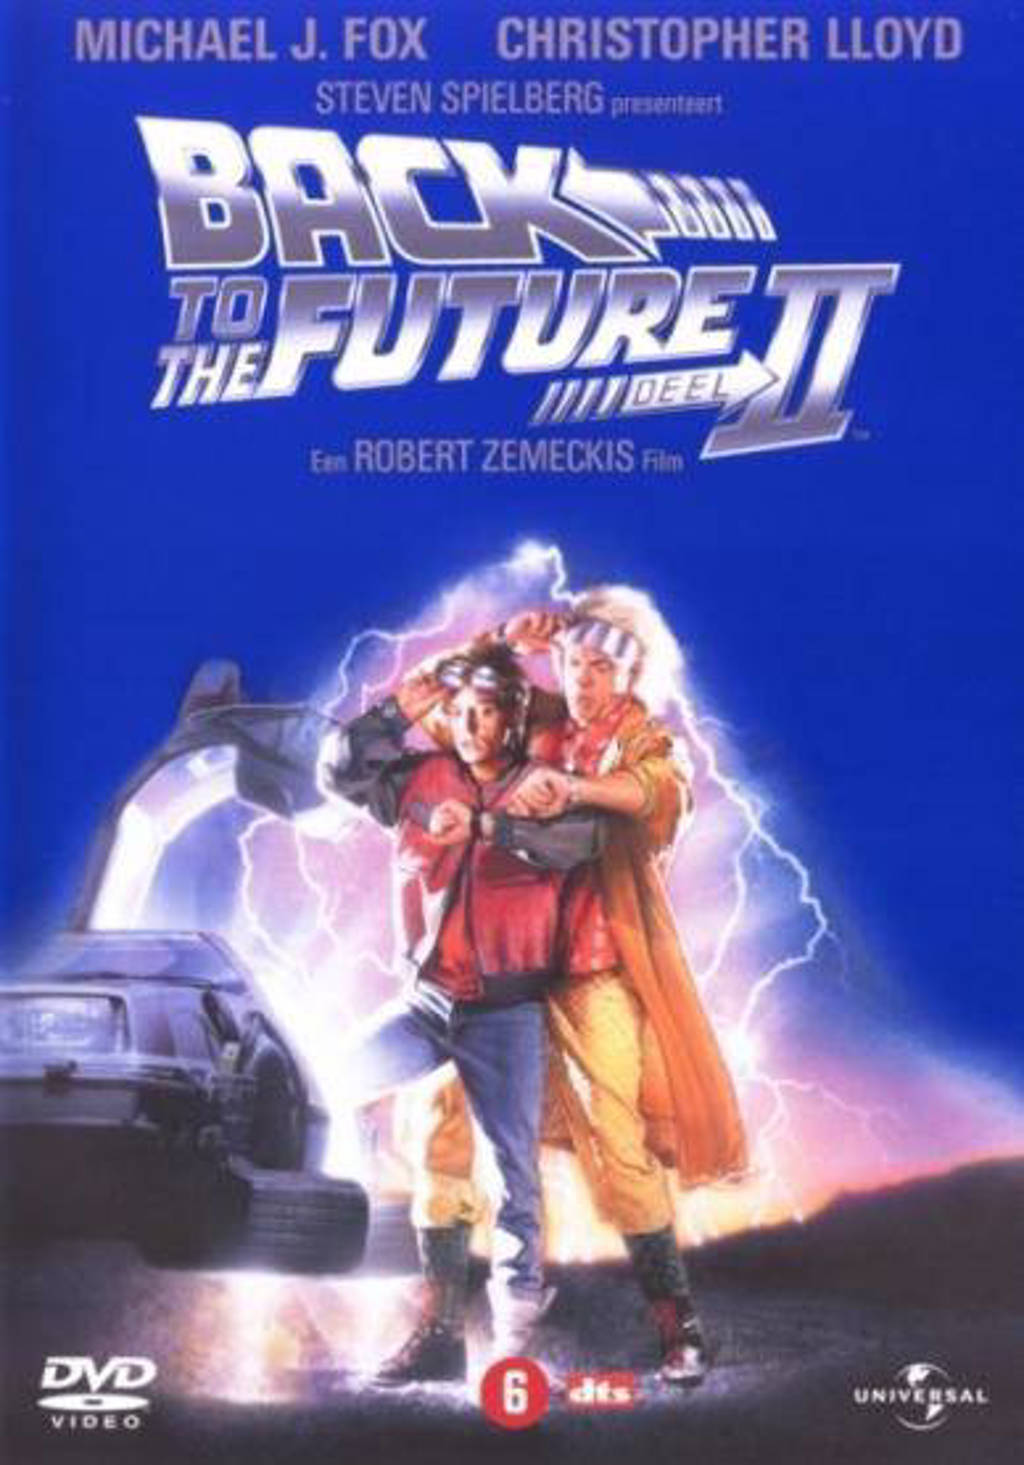 Back to the future 2 (DVD)